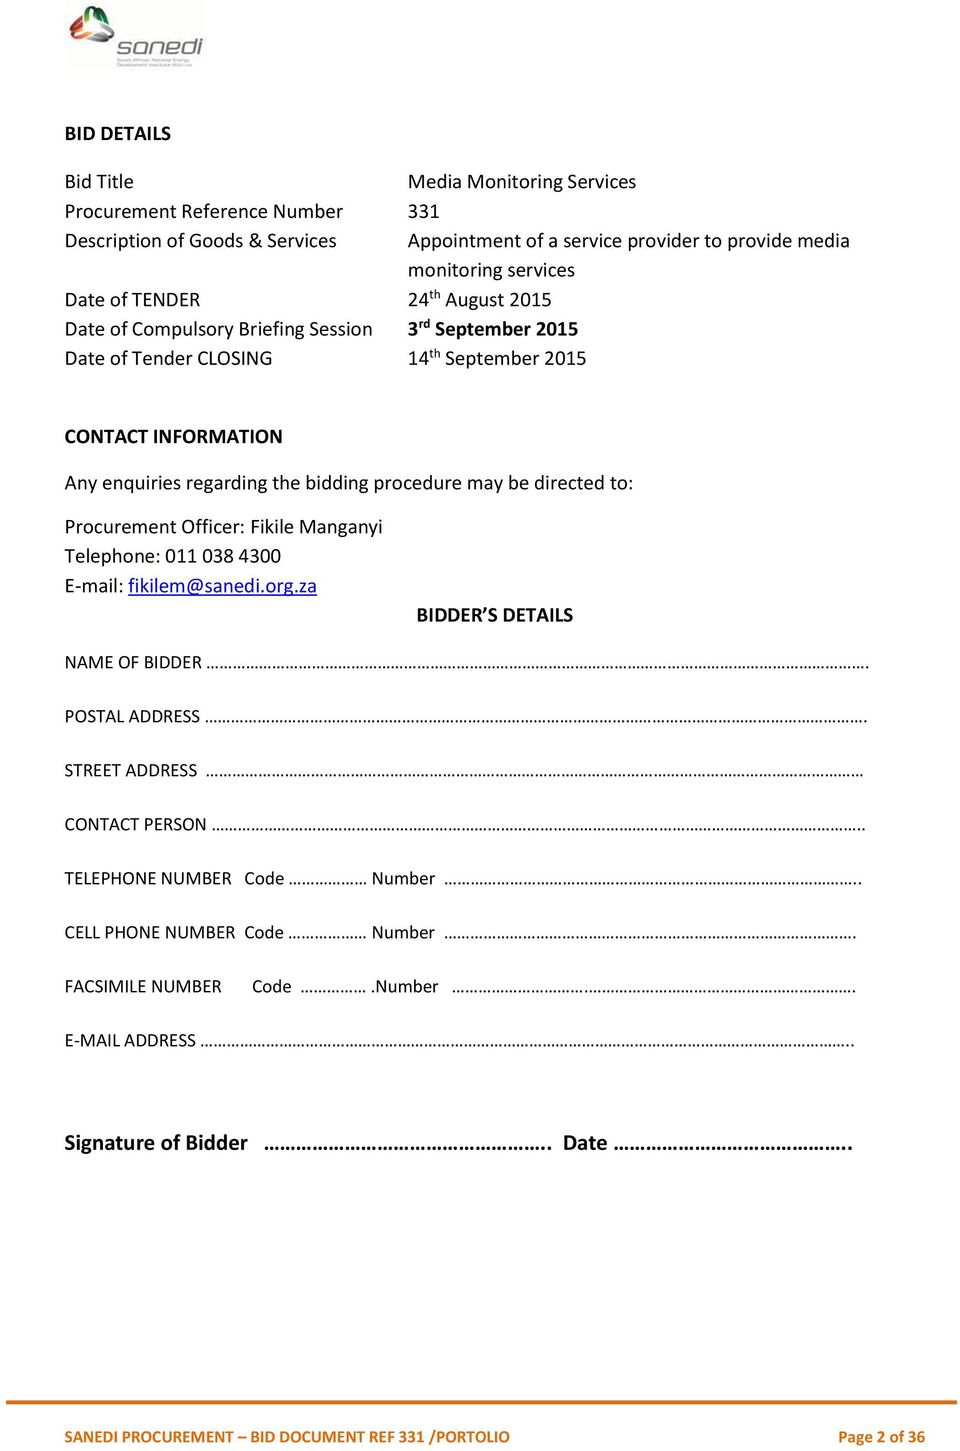 may be directed to: Procurement Officer: Fikile Manganyi Telephone: 011 038 4300 E-mail: fikilem@sanedi.org.za BIDDER S DETAILS NAME OF BIDDER. POSTAL ADDRESS. STREET ADDRESS CONTACT PERSON.